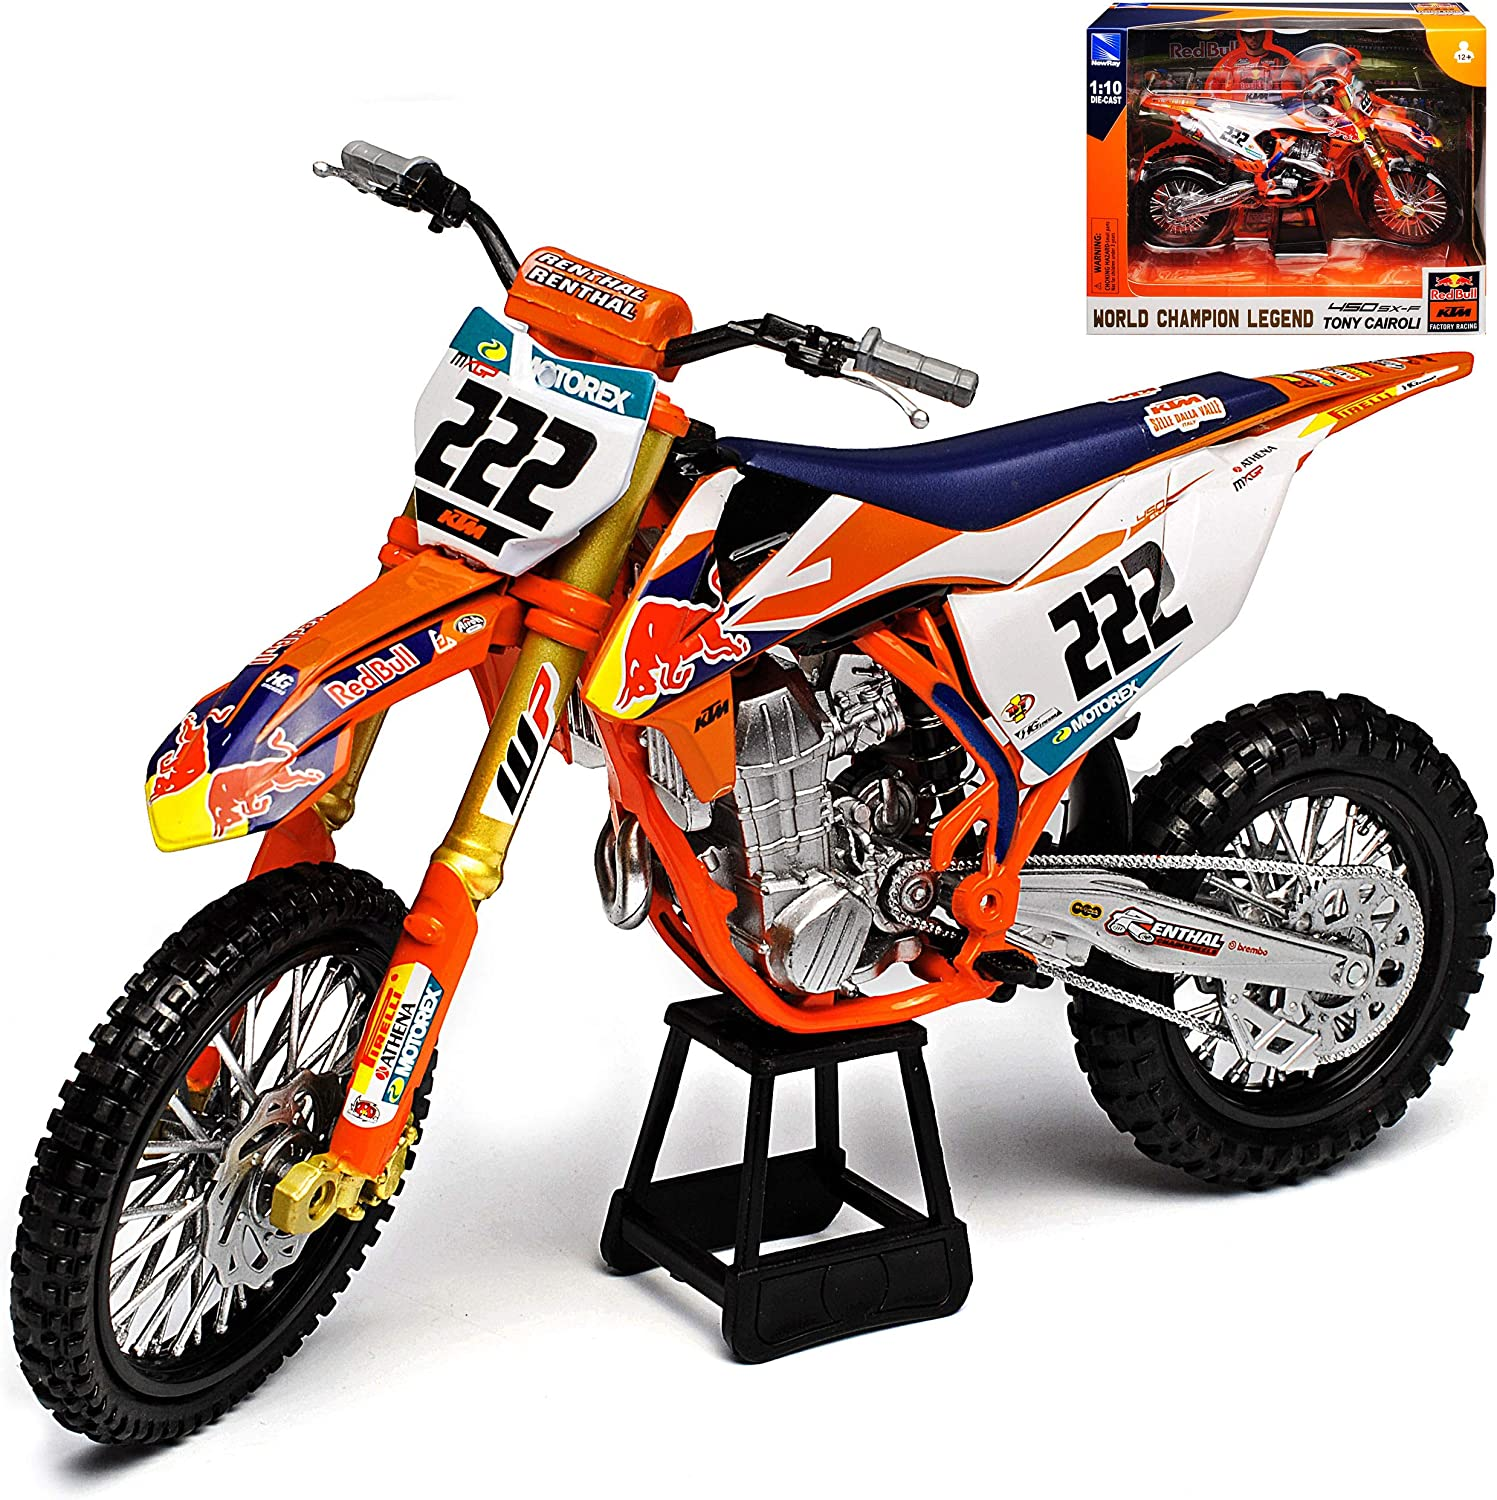 New Ray K T M 450 Sx F Tony Cairoli No 222 Red Bull 2018 Supercross World Cup Enduro 1 10 Model Motorcycle With Individual Number Plate Spielzeug